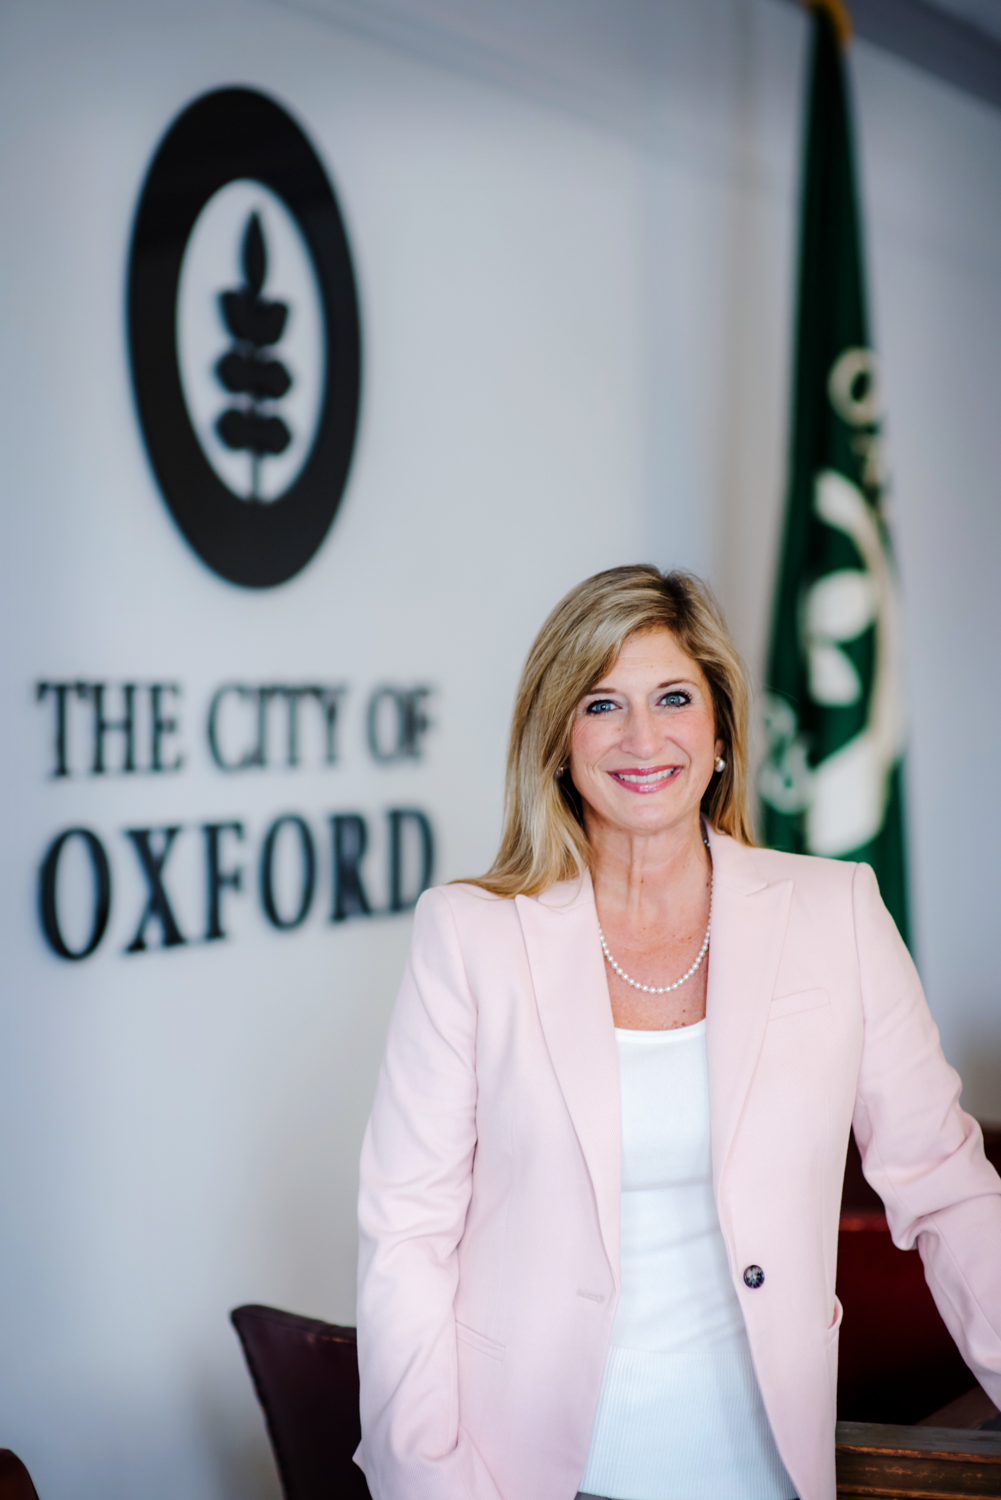 Mayor Robyn Tannehill